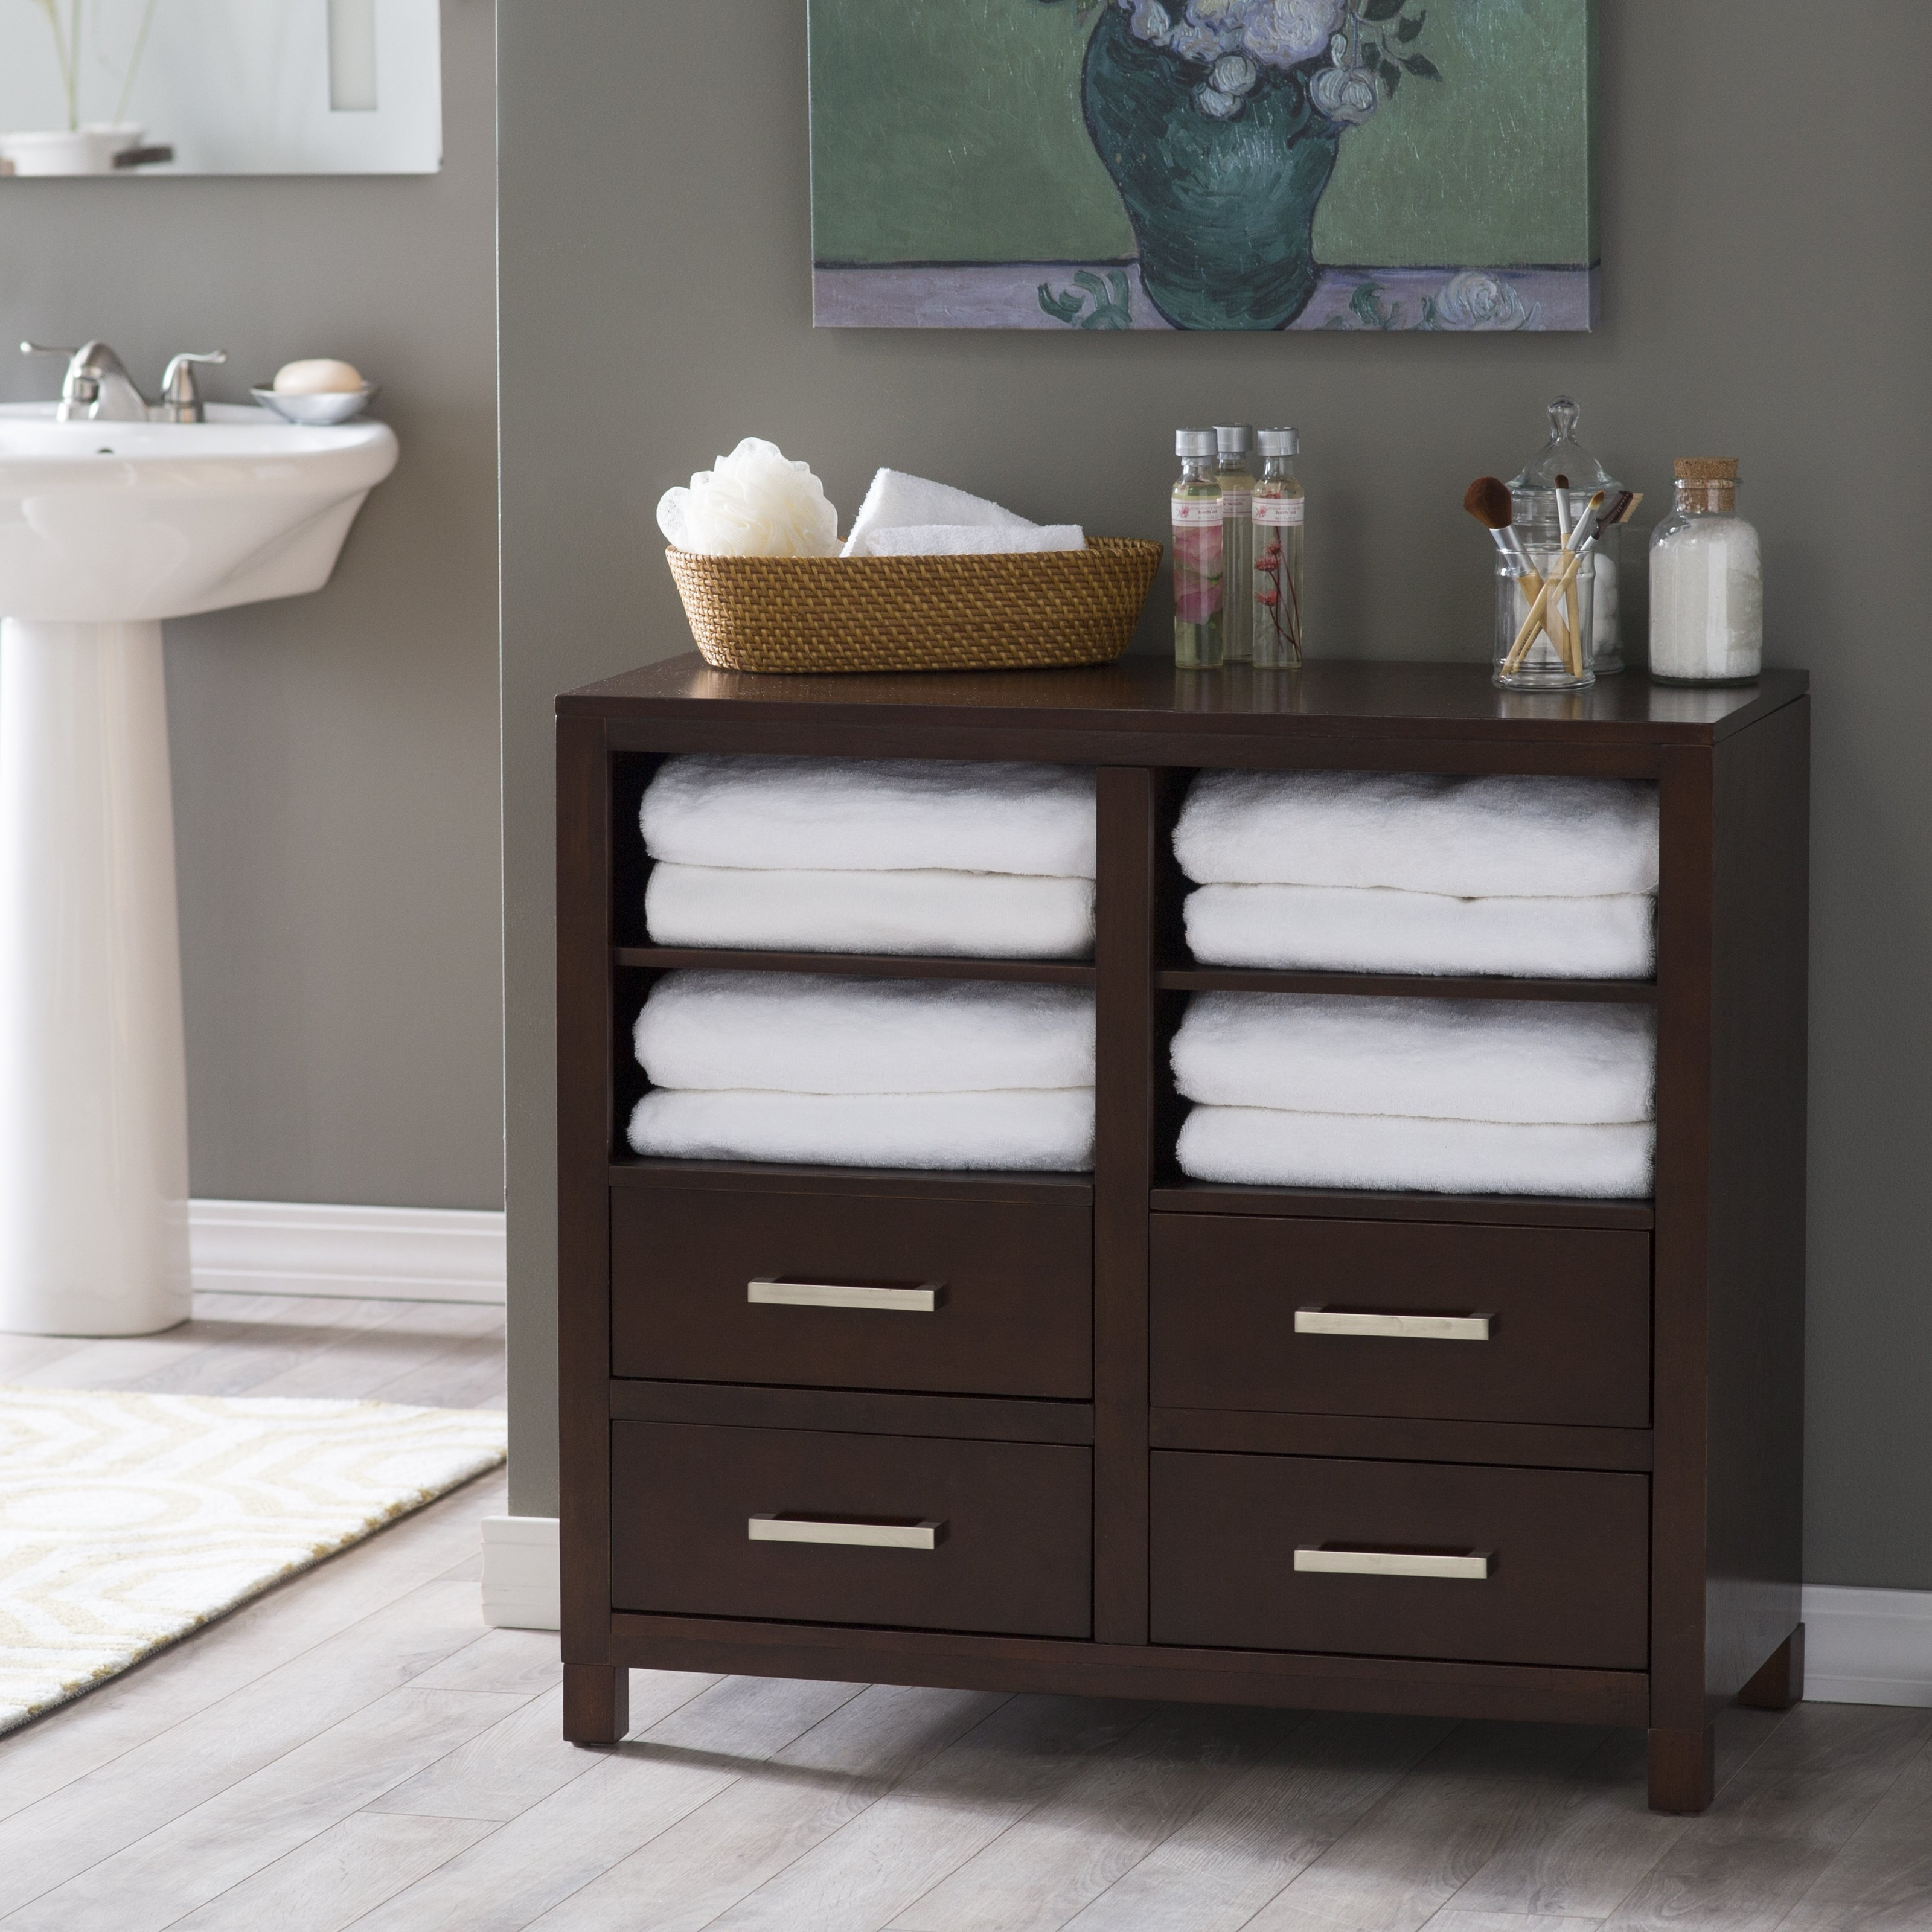 Floor Cabinets For Bathrooms